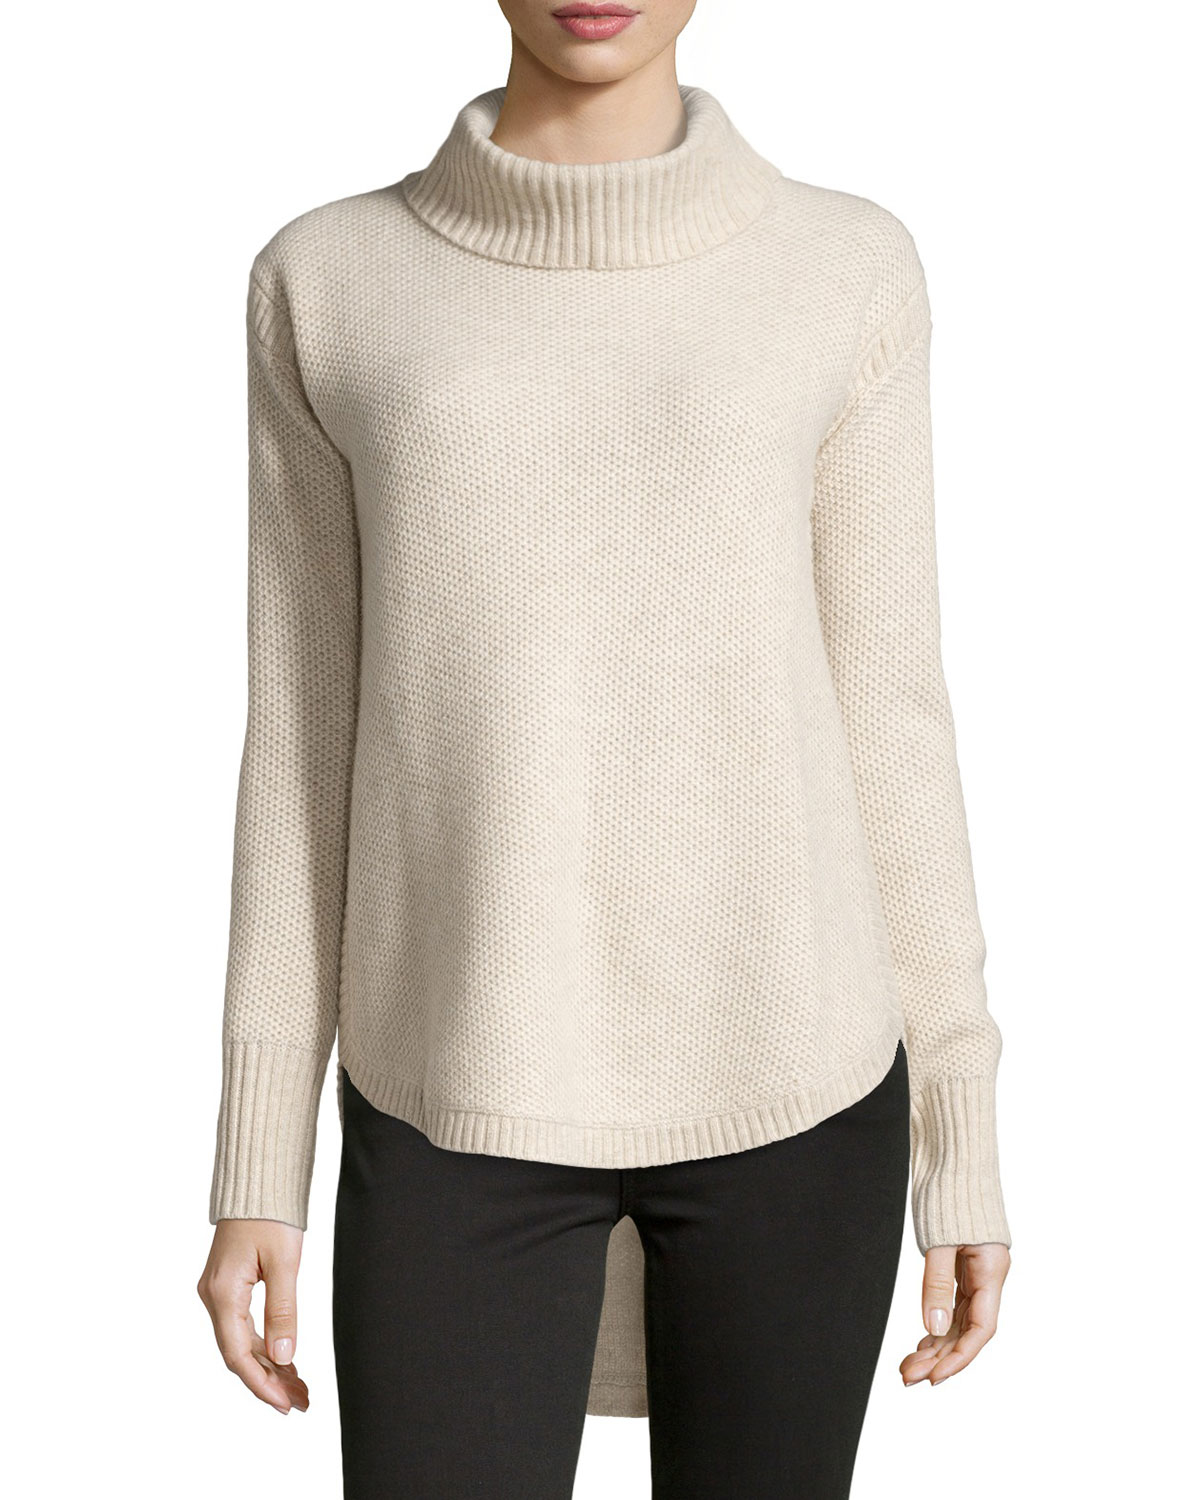 neiman marcus cashmere turtleneck pullover sweater in. Black Bedroom Furniture Sets. Home Design Ideas